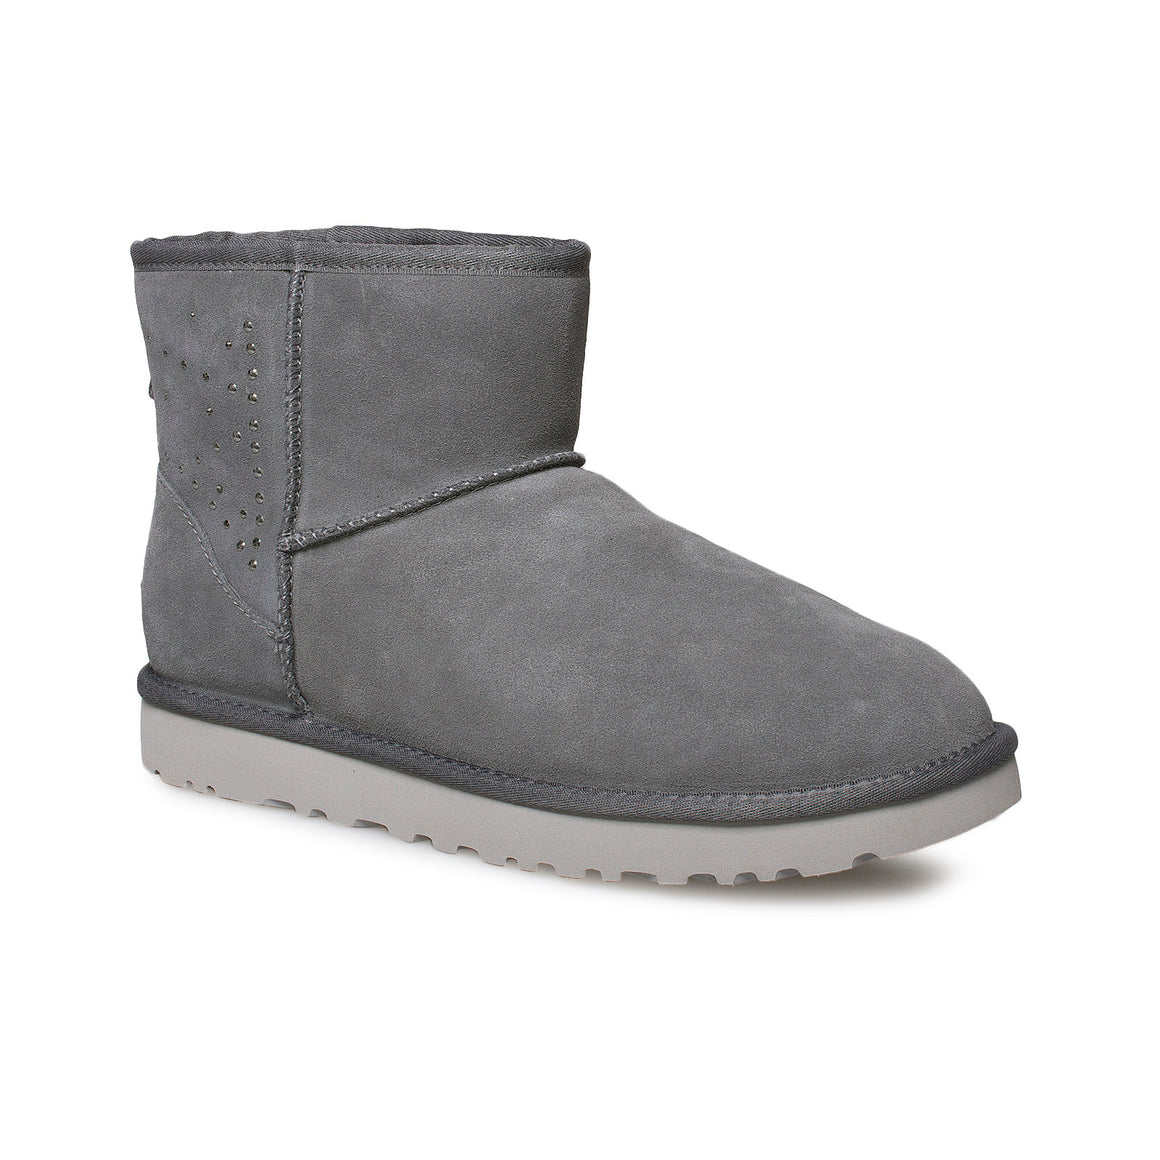 UGG Classic Mini II Studded Charcoal Boots - Women's